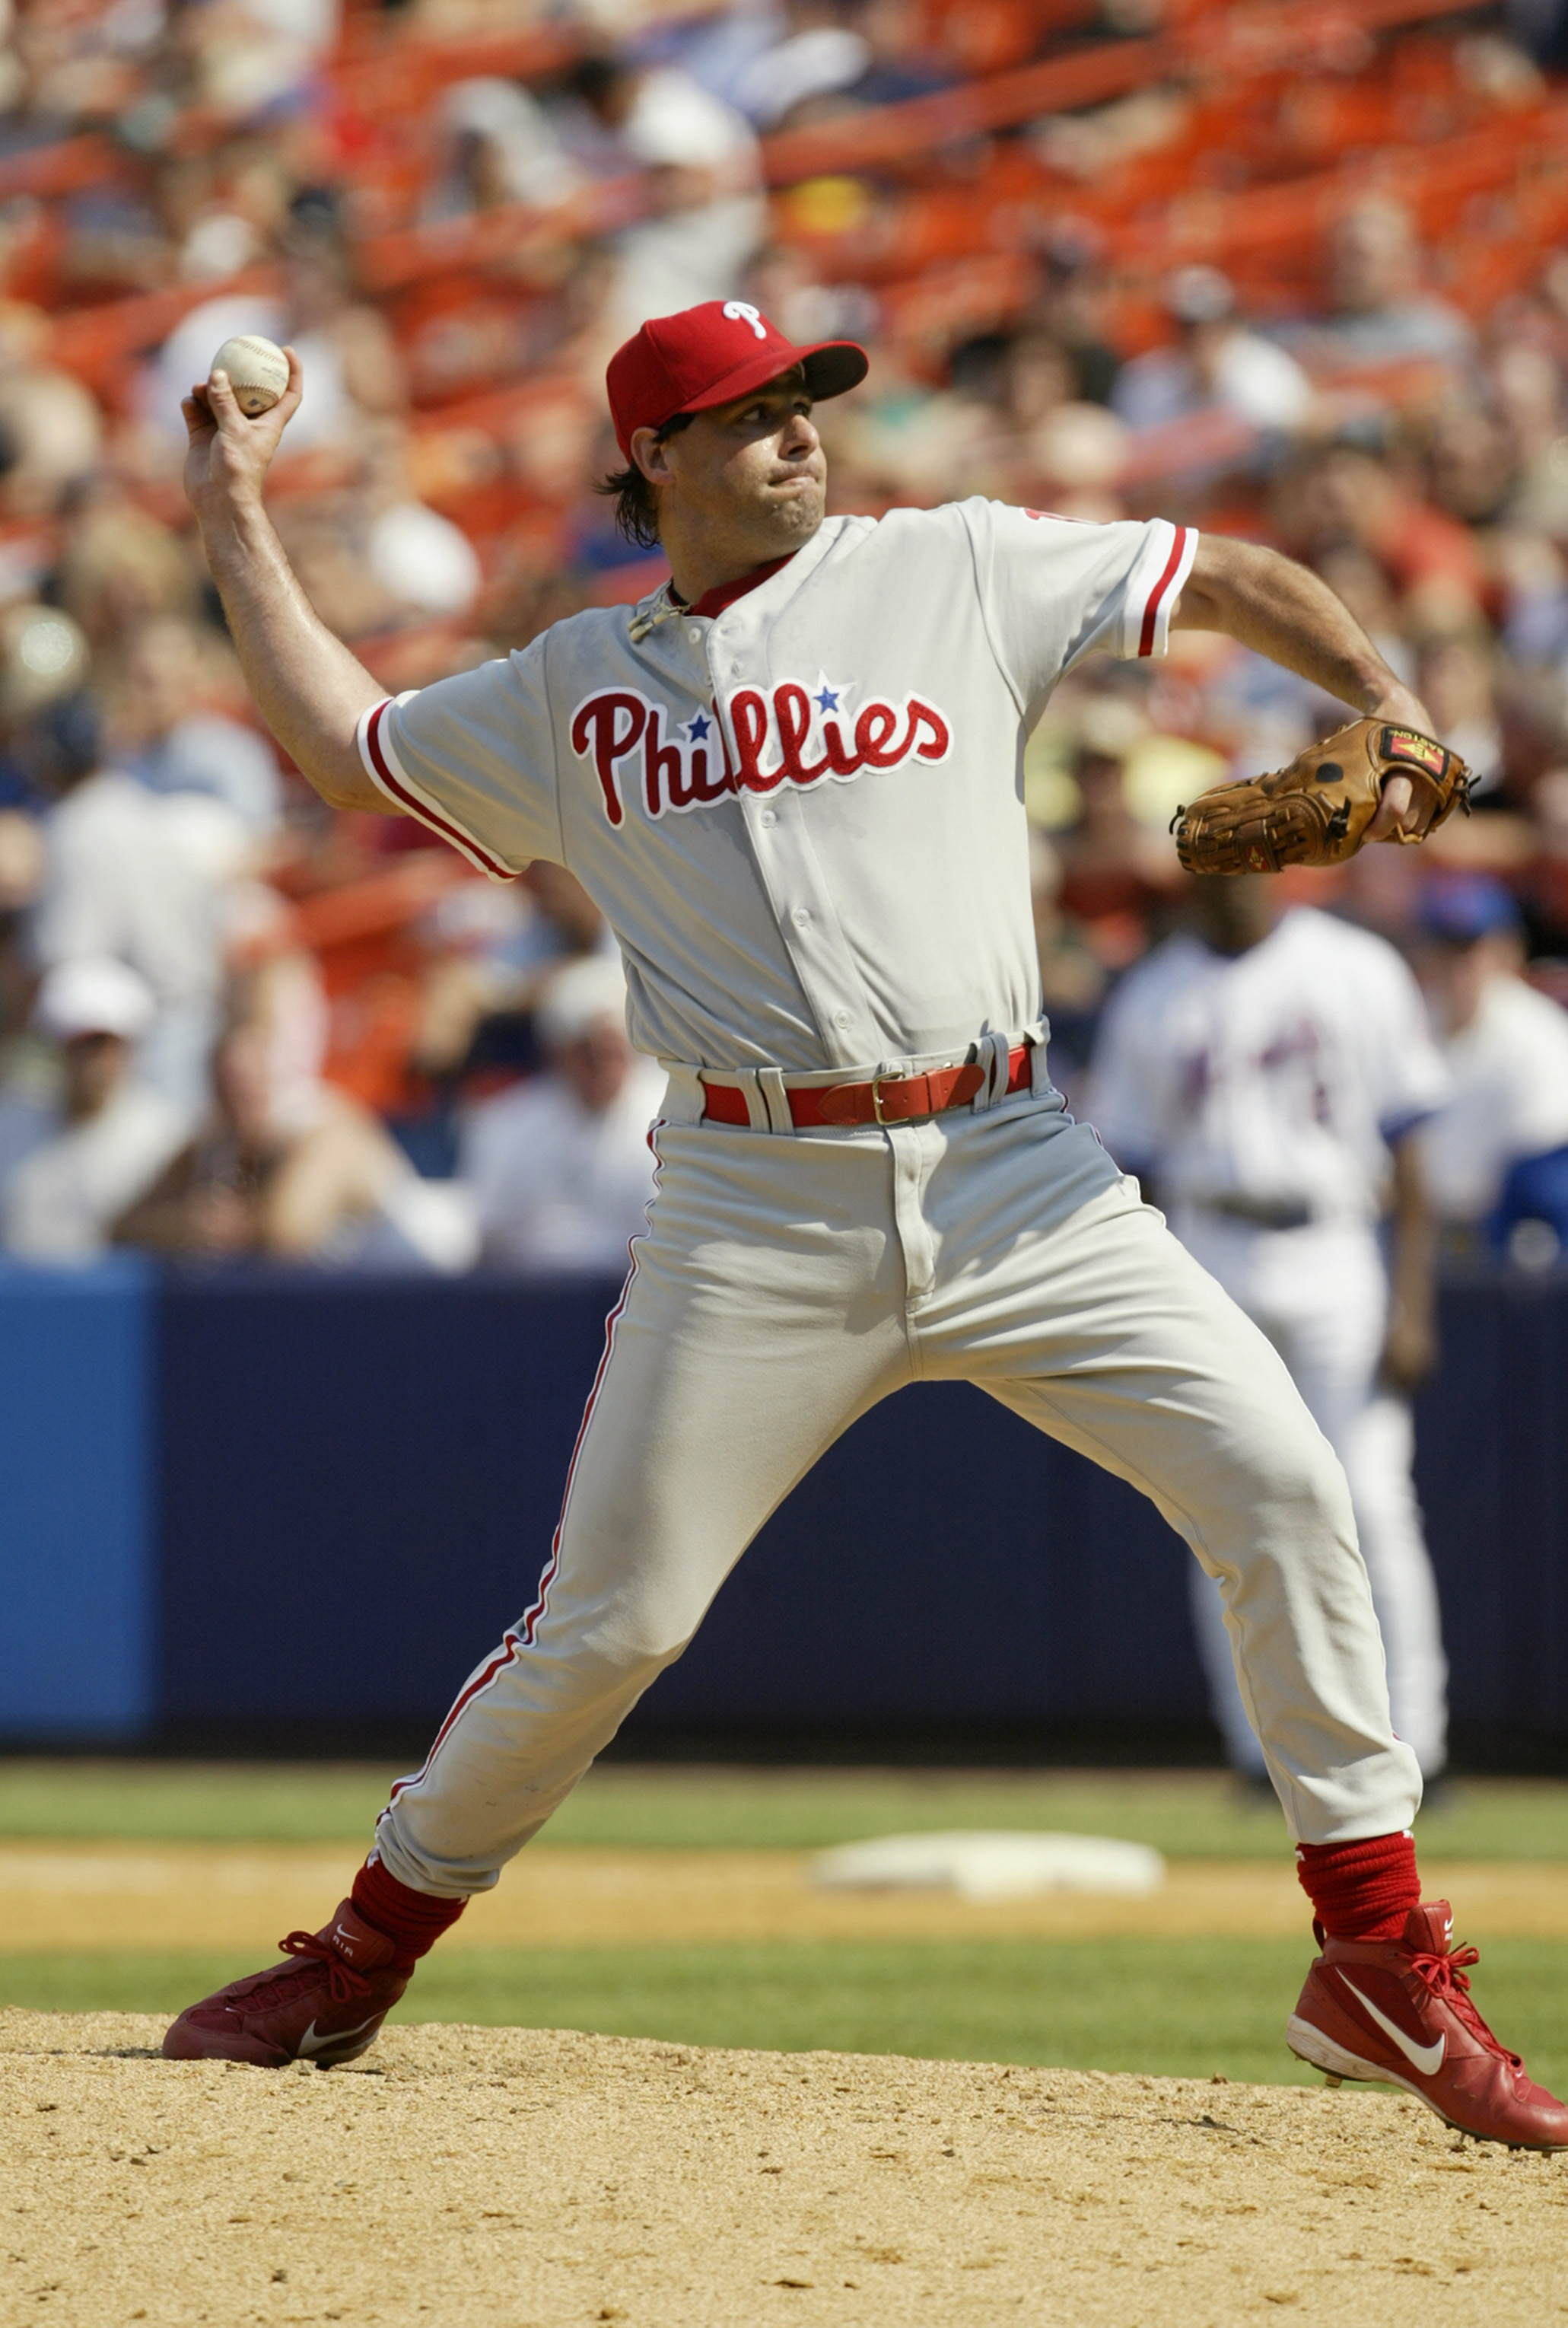 FLUSHING, NY - JULY 12:  Turk Wendell #13 of the Philadelphia Phillies pitches against the New York Mets on July 12, 2003 at Shea Stadium in Flushing, New York.  The Phillies defeated the Mets in 11 innings 4-2.  (Photo by Chris Trotman/Getty Images)